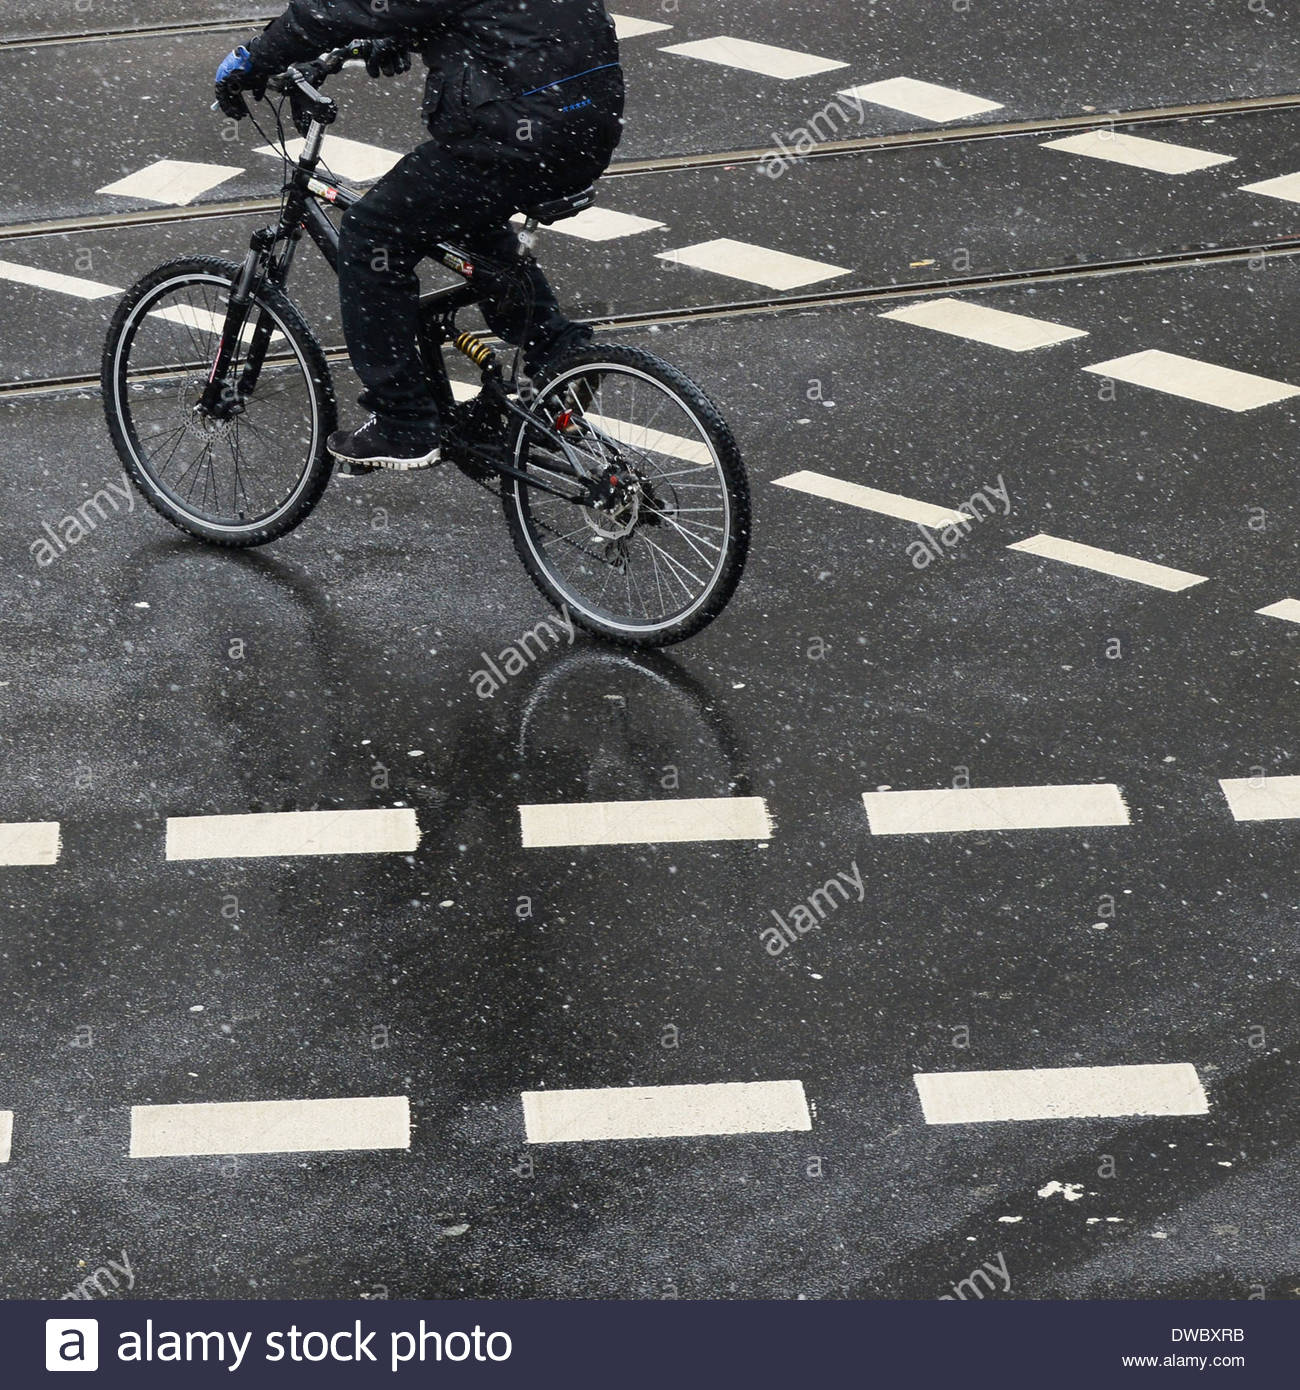 Low section of person cycling on street with markings - Stock Image